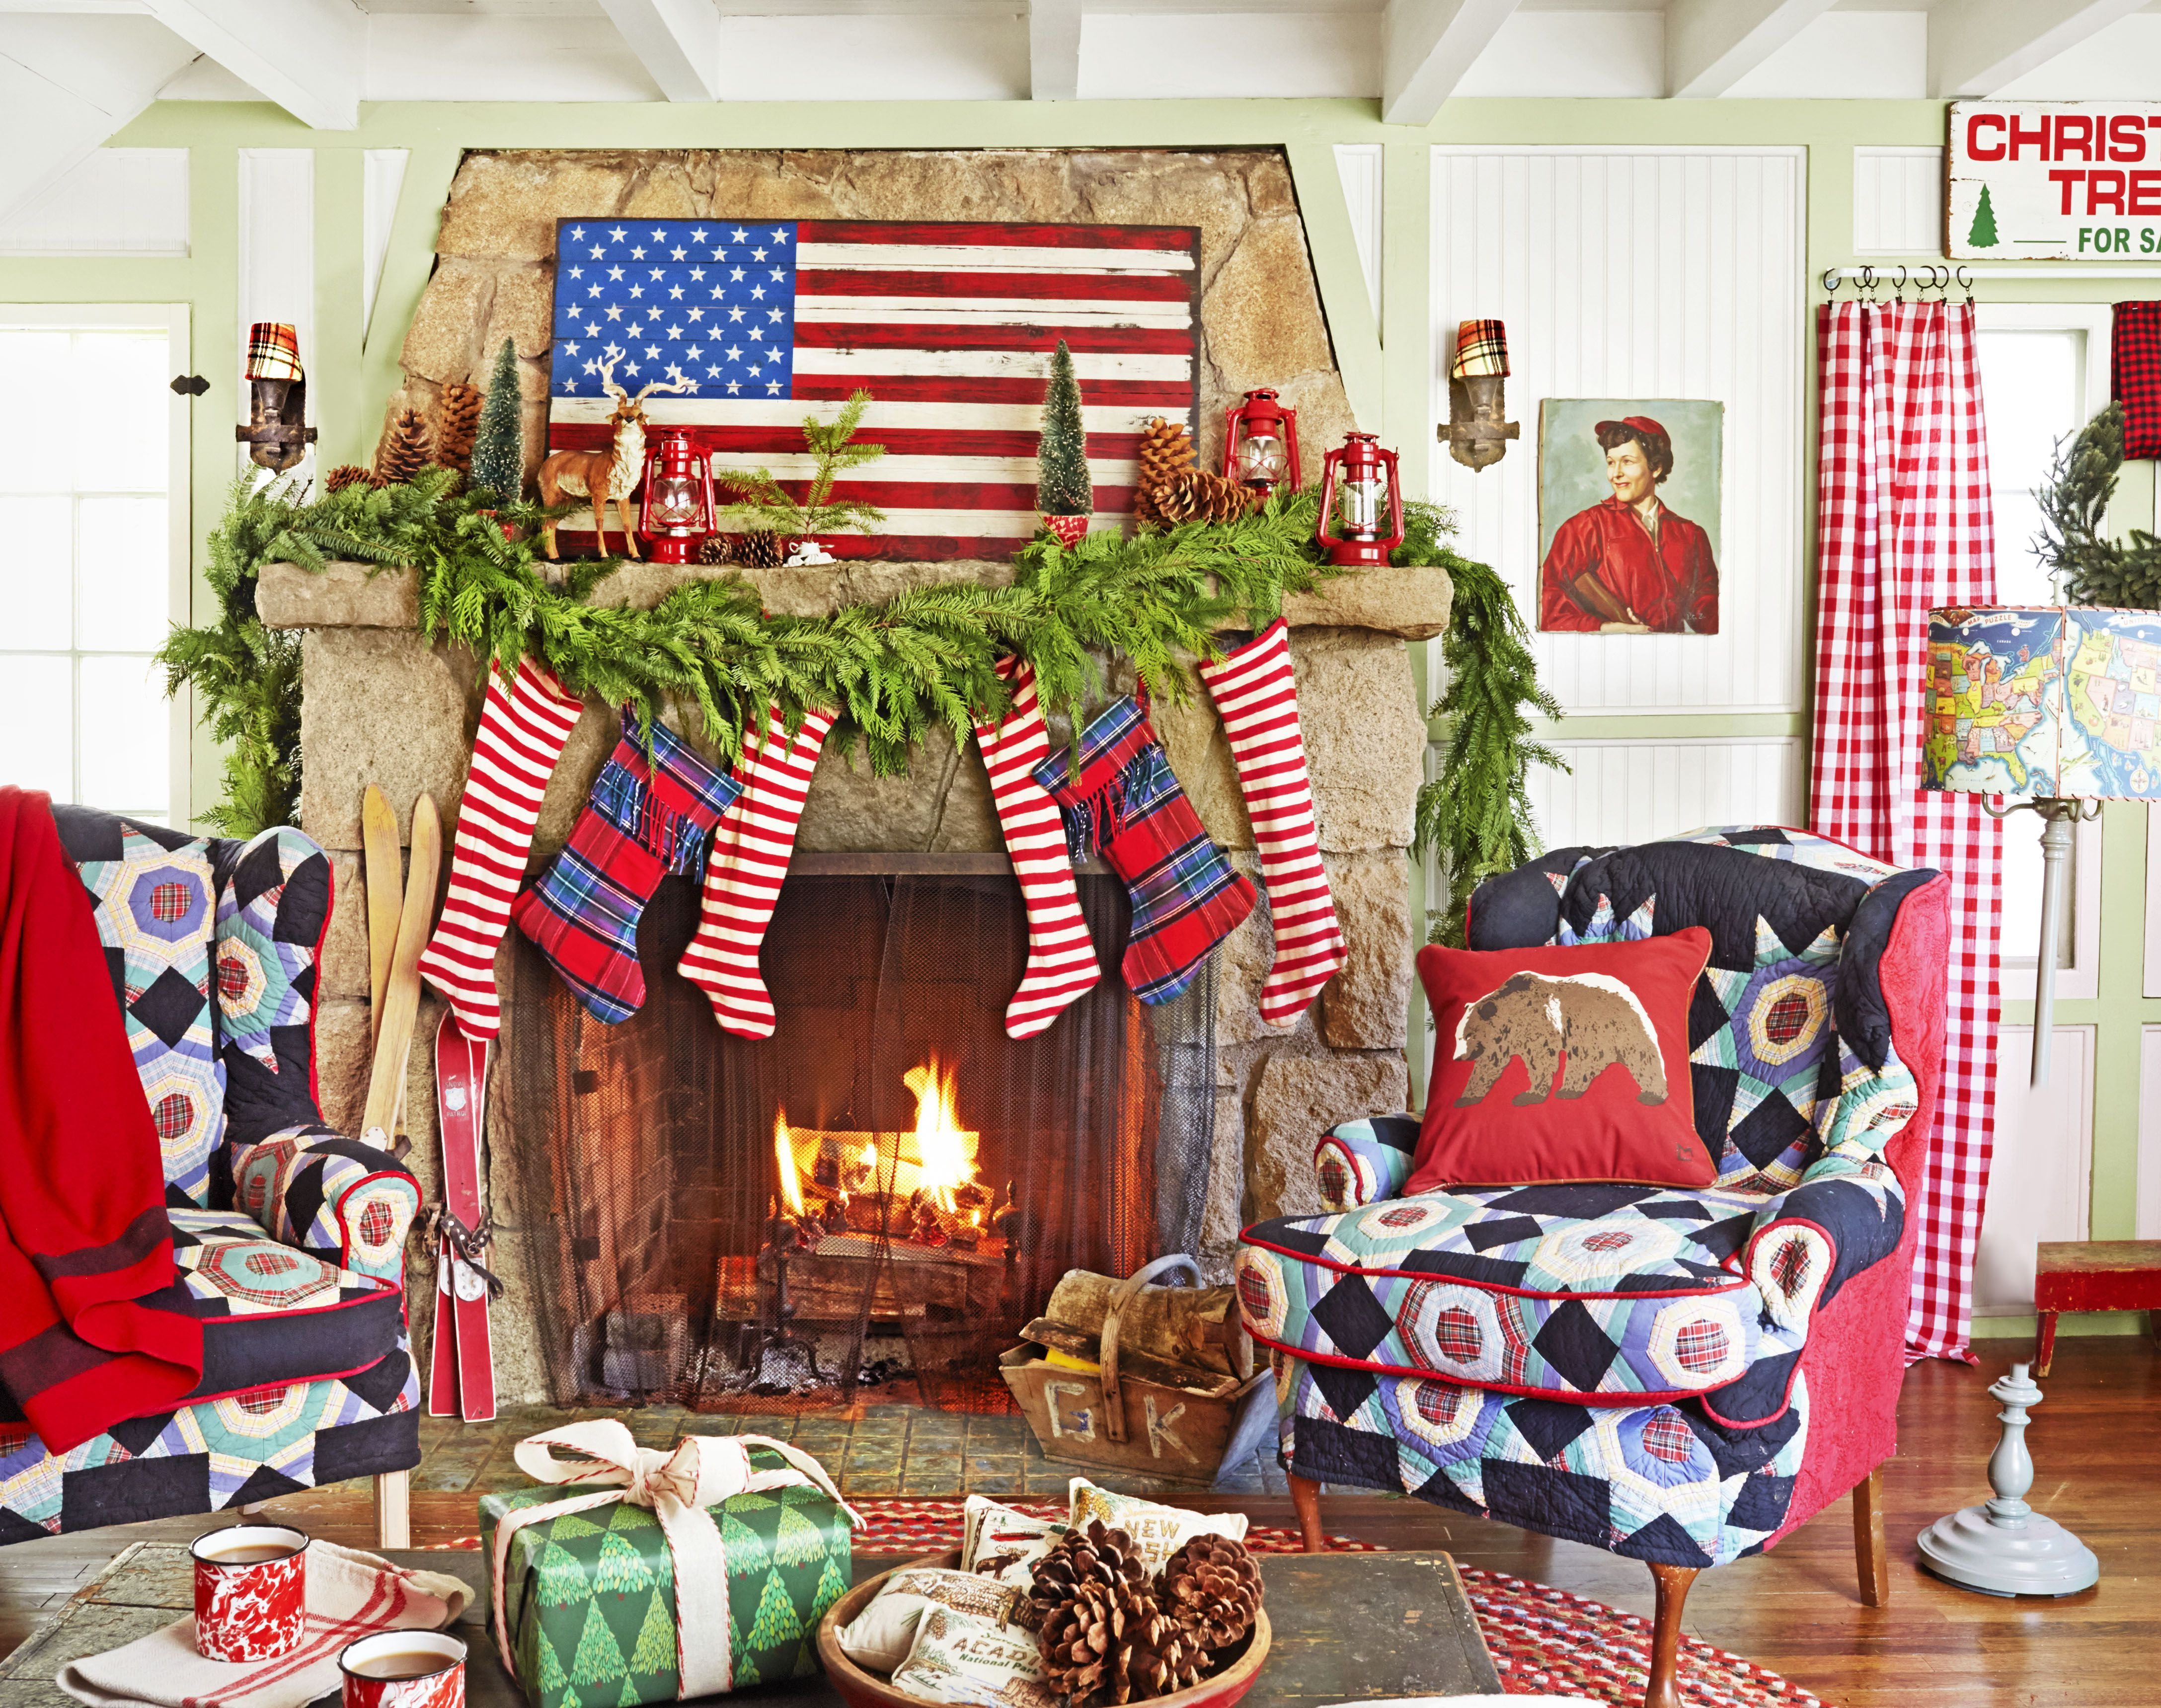 50 christmas mantel decorations ideas for holiday fireplace mantel decorating - Decorating A Mantel For Christmas